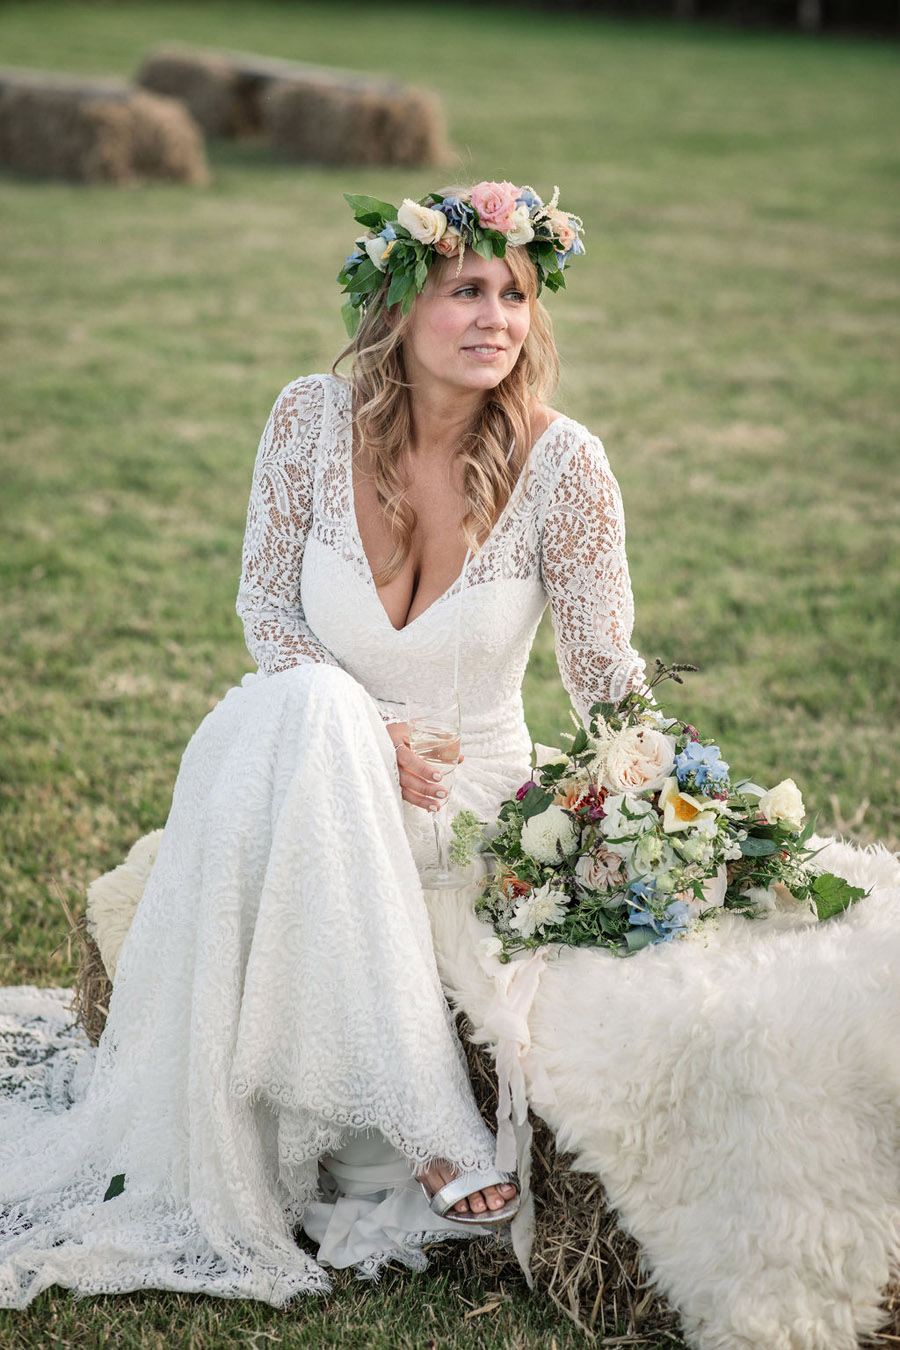 Evening sunset wedding inspiration at Willow Grange Farm, with Becky Harley Photography (1)